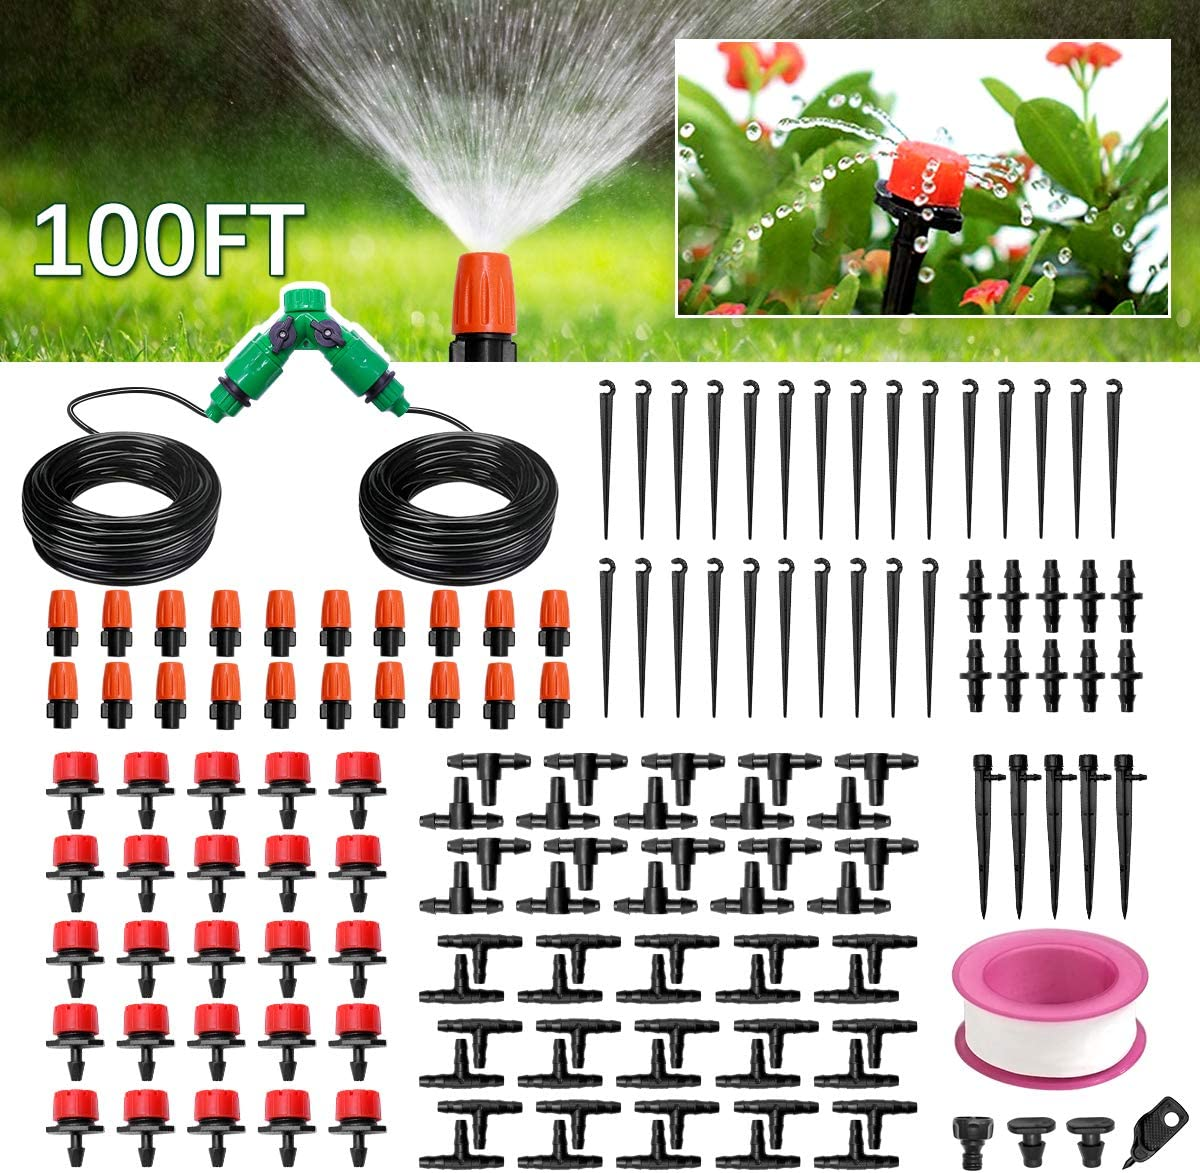 Garden Drip Irrigation Kit - 100ft/30m DIY Irrigation System with Adjustable Nozzle - Automatic Micro Irrigation Tubing Kits, Water-Saving Sprinkler System for Greenhouse, Raised Flower Bed, Patio